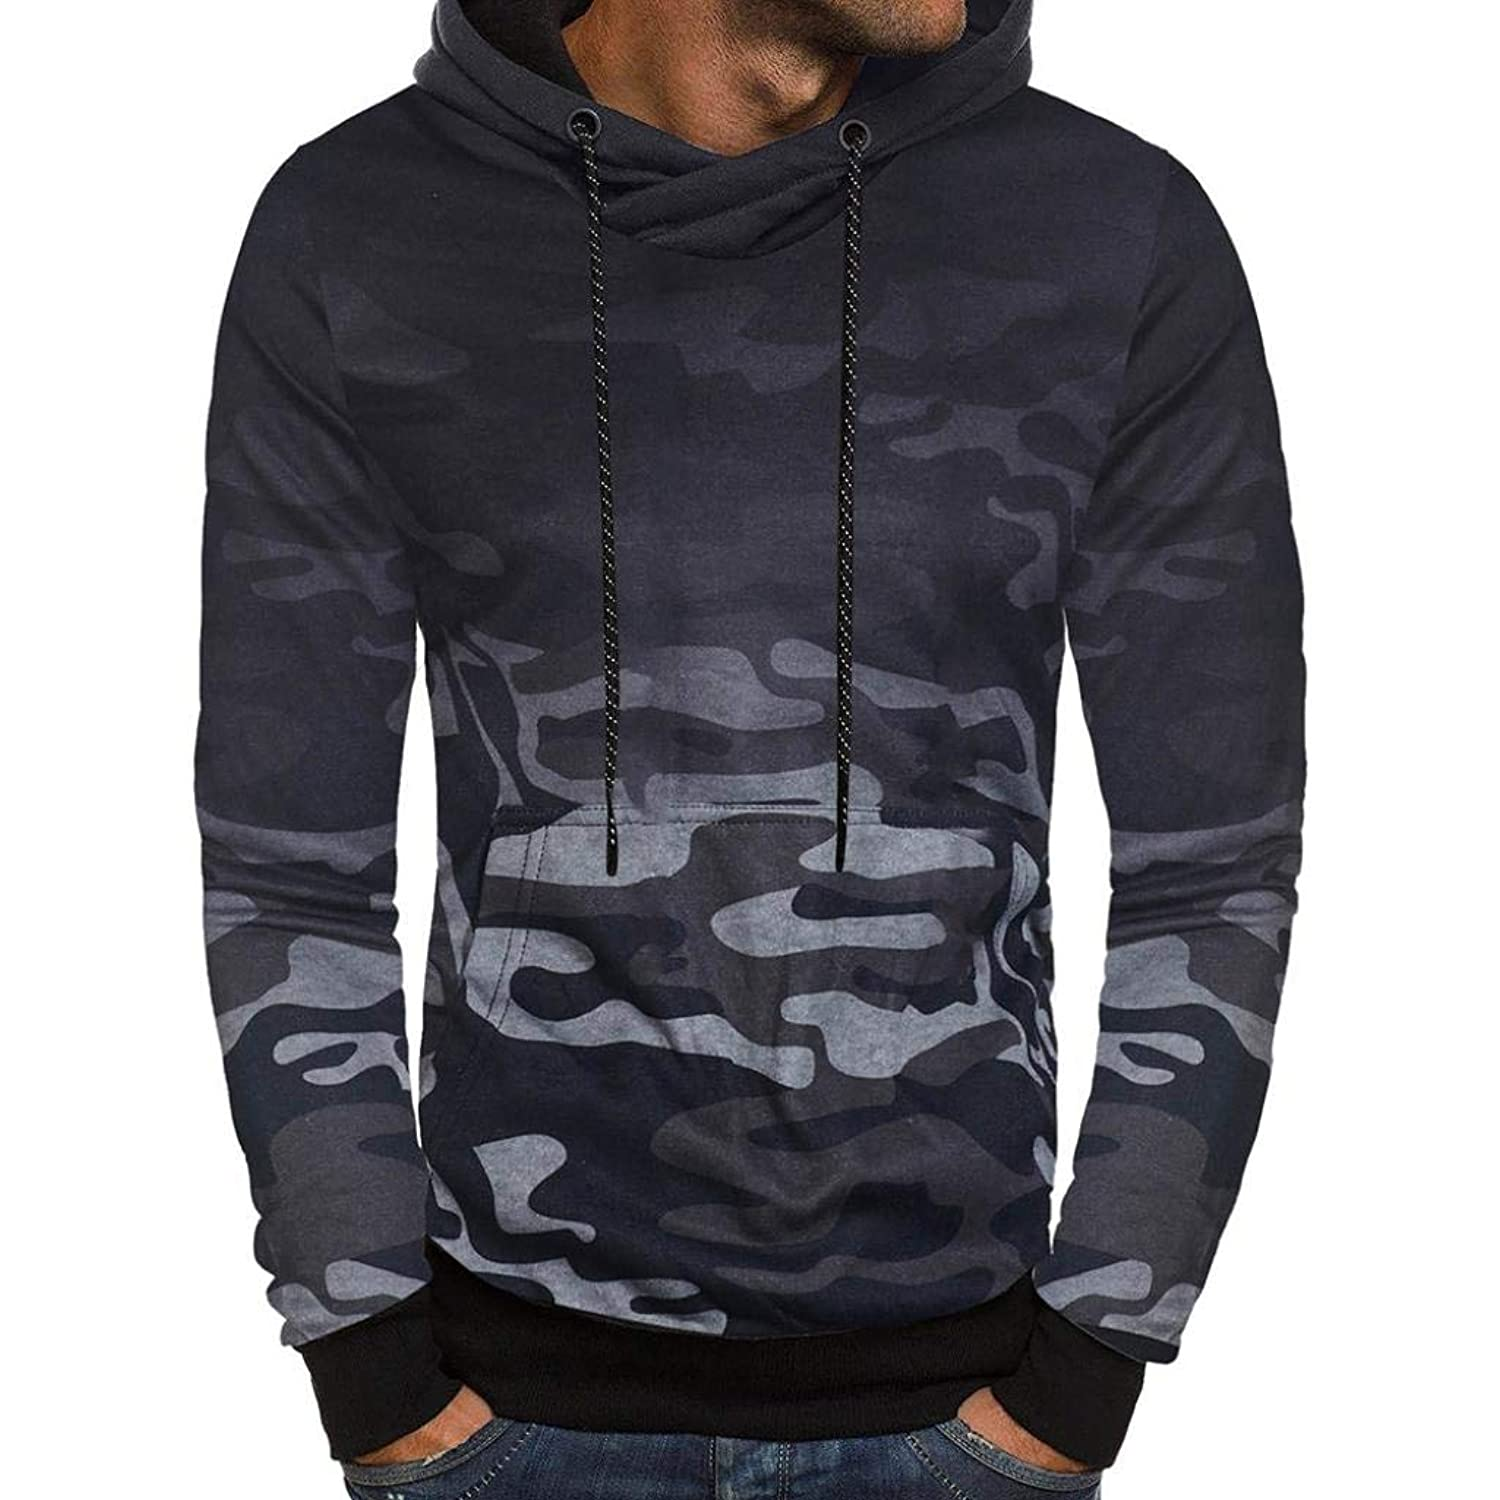 Easytoy Mens Leather Patchwork Button Hoodie Hooded Sweatshirt Tops